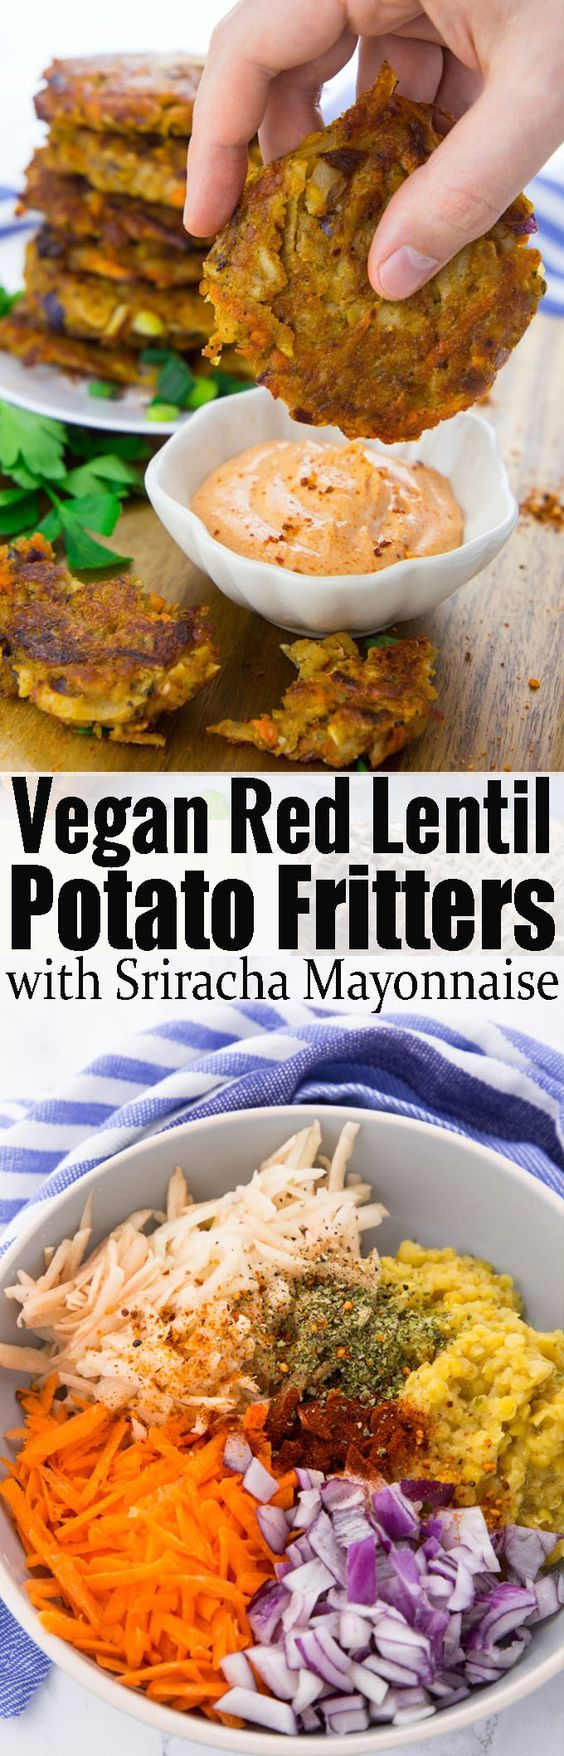 FacebookTwitterGoogle+PinterestThese potato fritters with red lentils are super easy to make and so delicious! They're best with spicy sriracha mayonnaise. The recipe for these fritters is of course 100 % vegan… Ingredients  For the vegetable potato fritters: 3/4cupred lentils... Continue Reading →